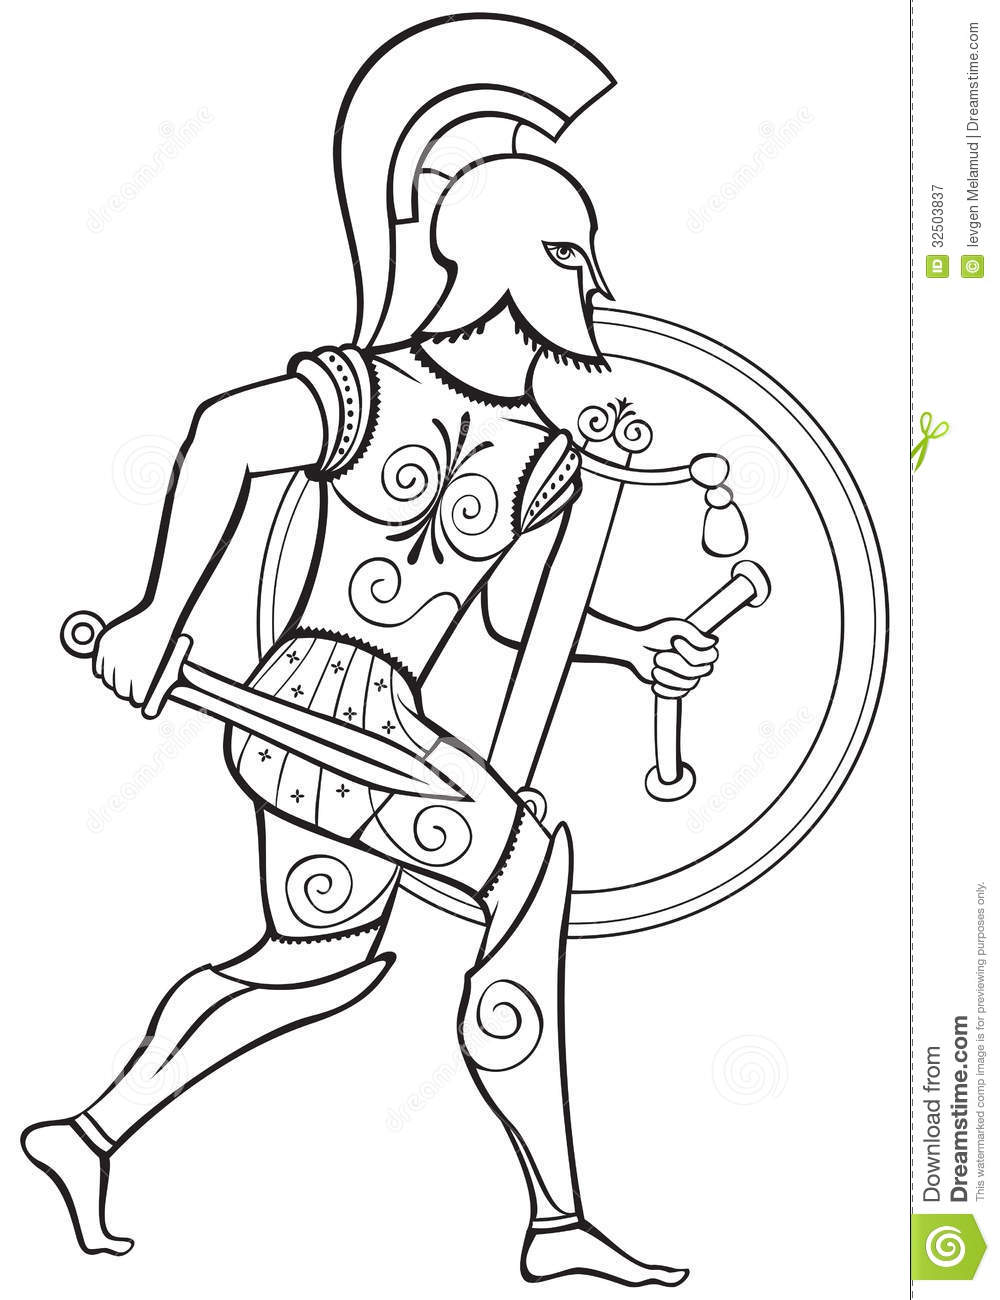 Hoplite ancient greek warrior royalty free stock for Guerriero da colorare